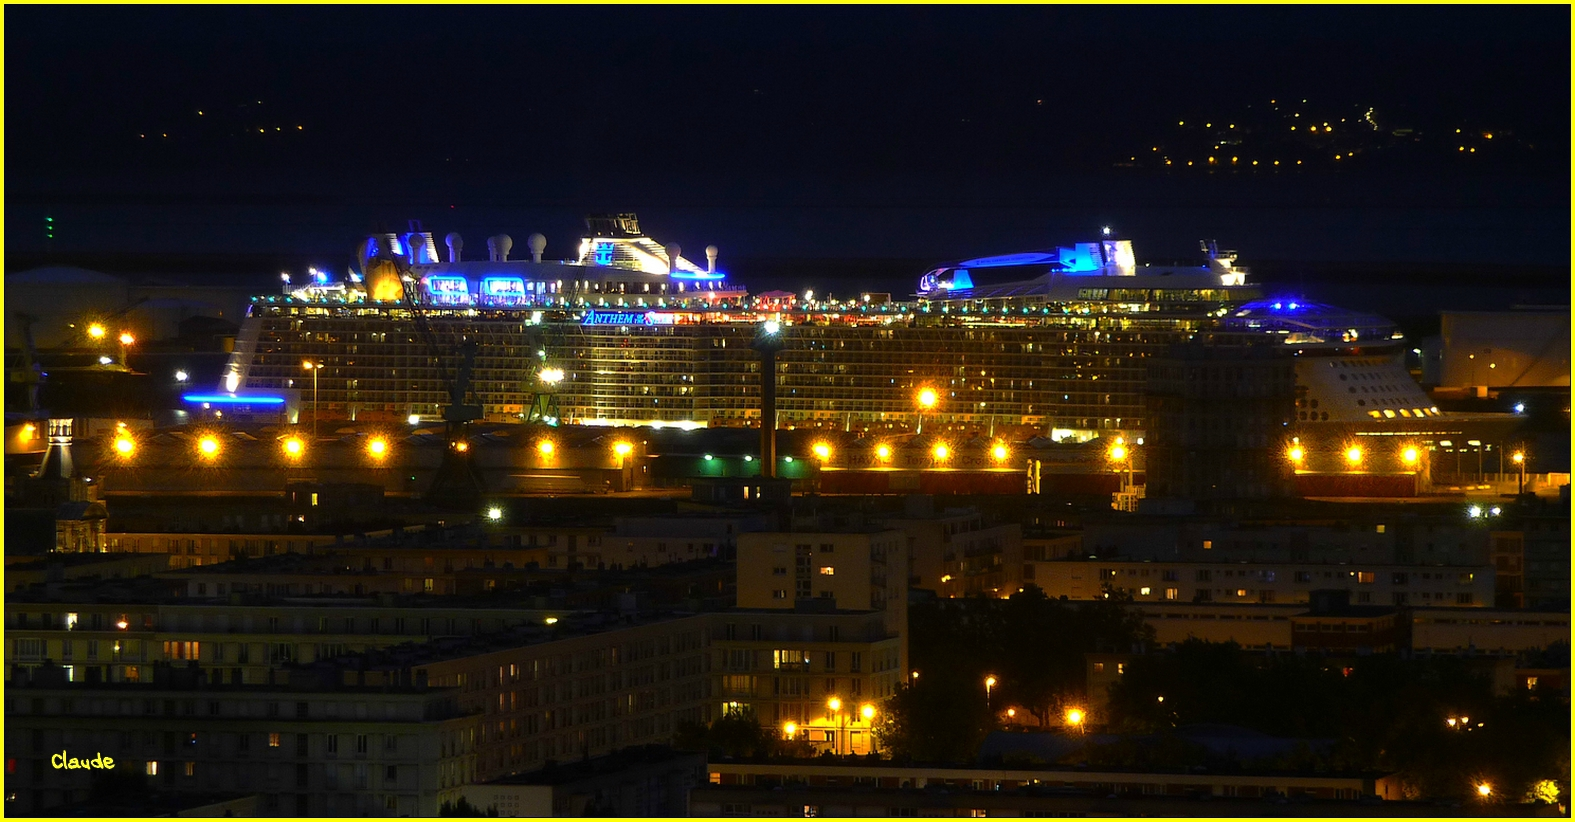 """ ANTHEM OF THE SEAS "" ........"